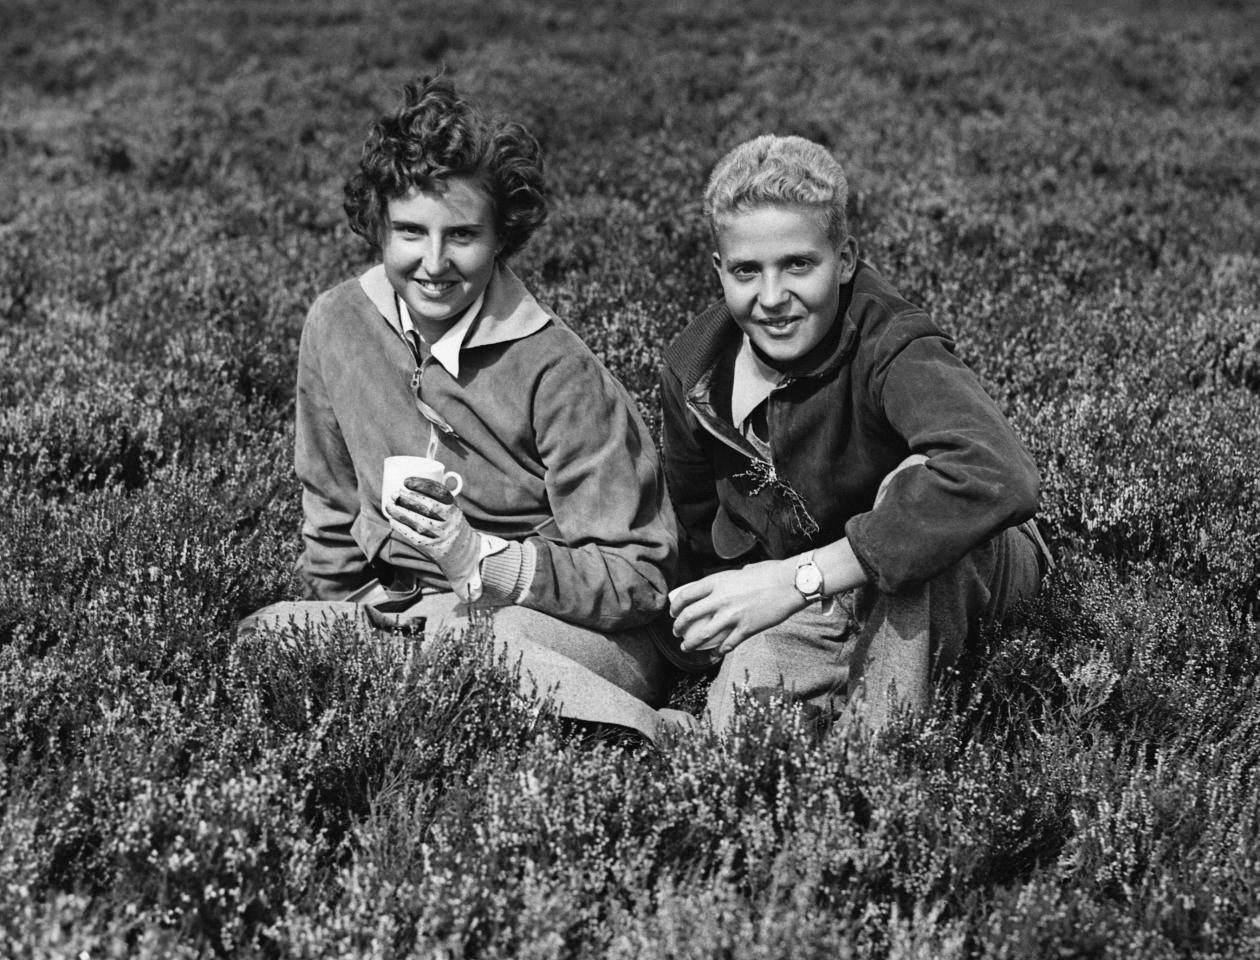 A pesar de ser mayor que don Juan Carlos las leyes de sucesión españolas impidieron que fuera reina. Los dos hermanos posan en Perthshire, Escocia, durante su primera salida de caza. (Foto: Hulton-Deutsch Collection / Corbis / Getty Images)